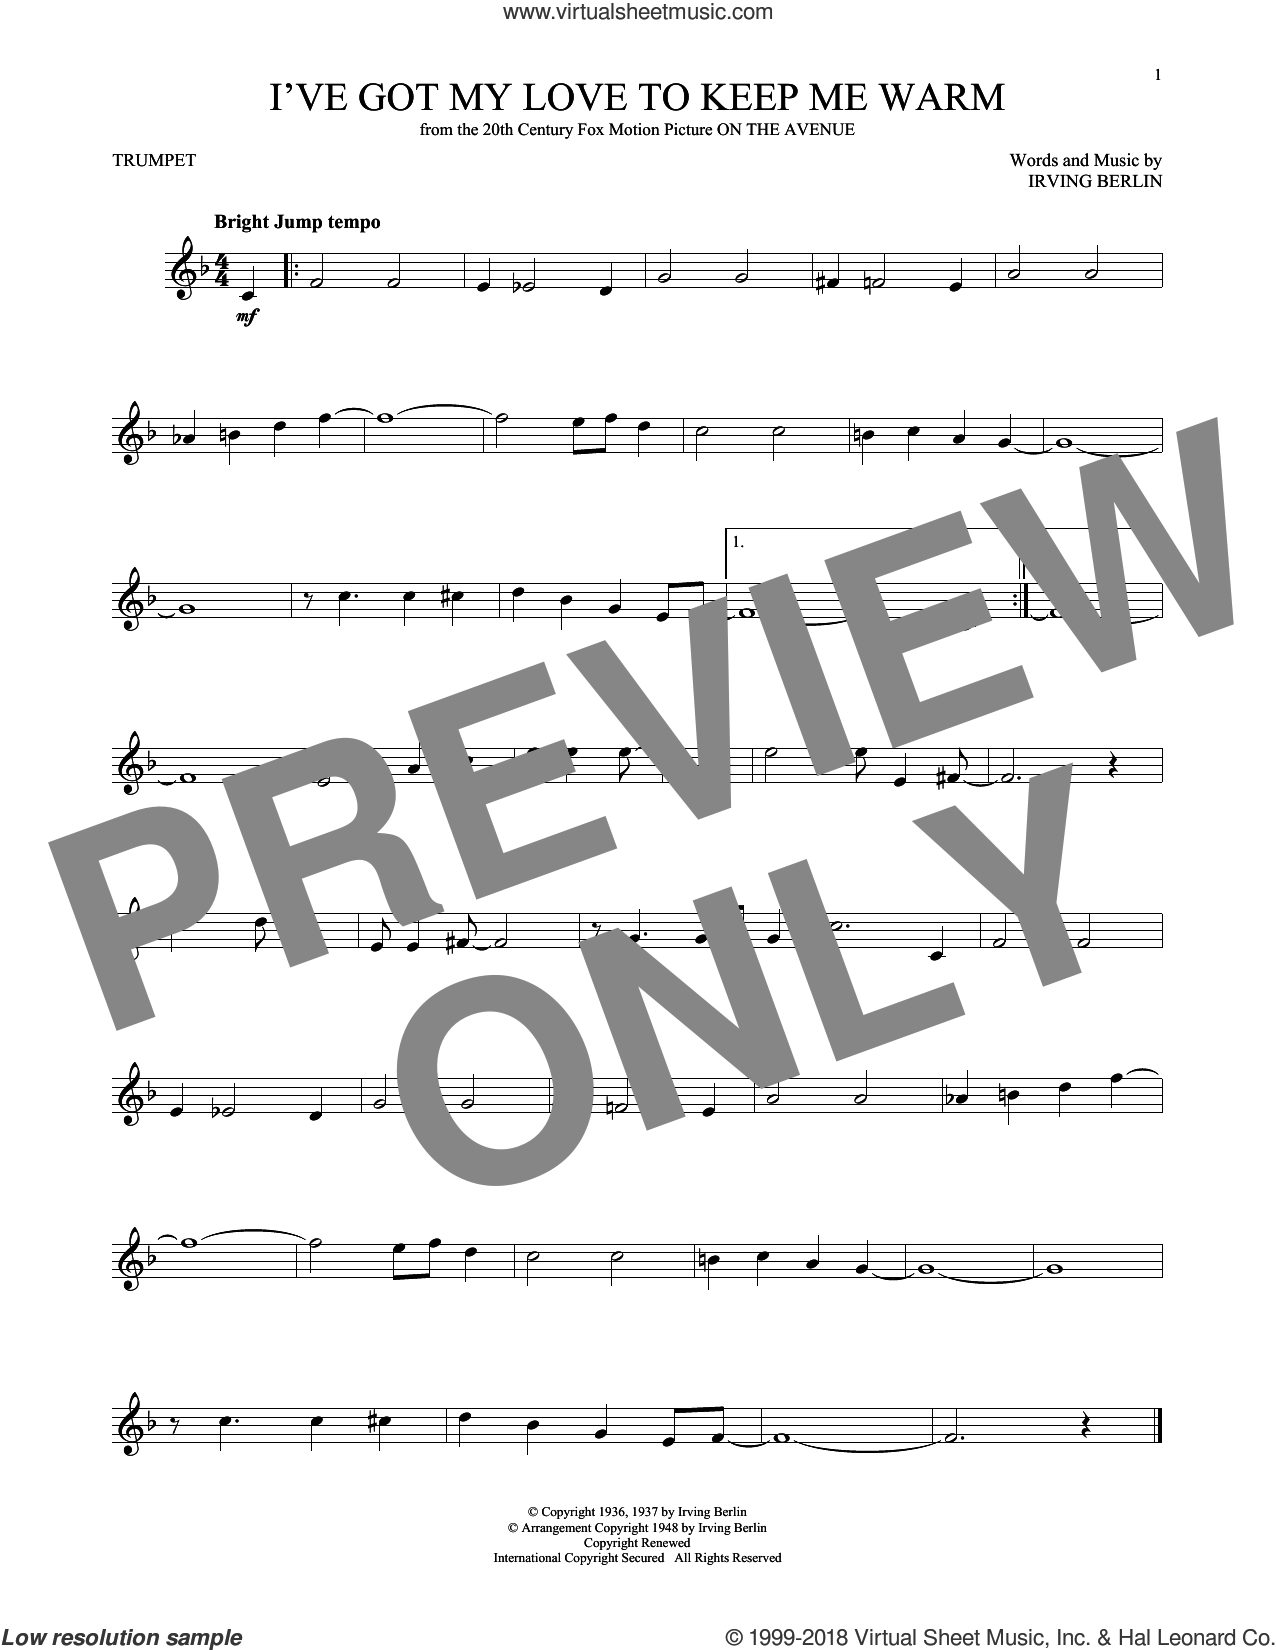 I've Got My Love To Keep Me Warm sheet music for trumpet solo by Irving Berlin and Benny Goodman, intermediate skill level